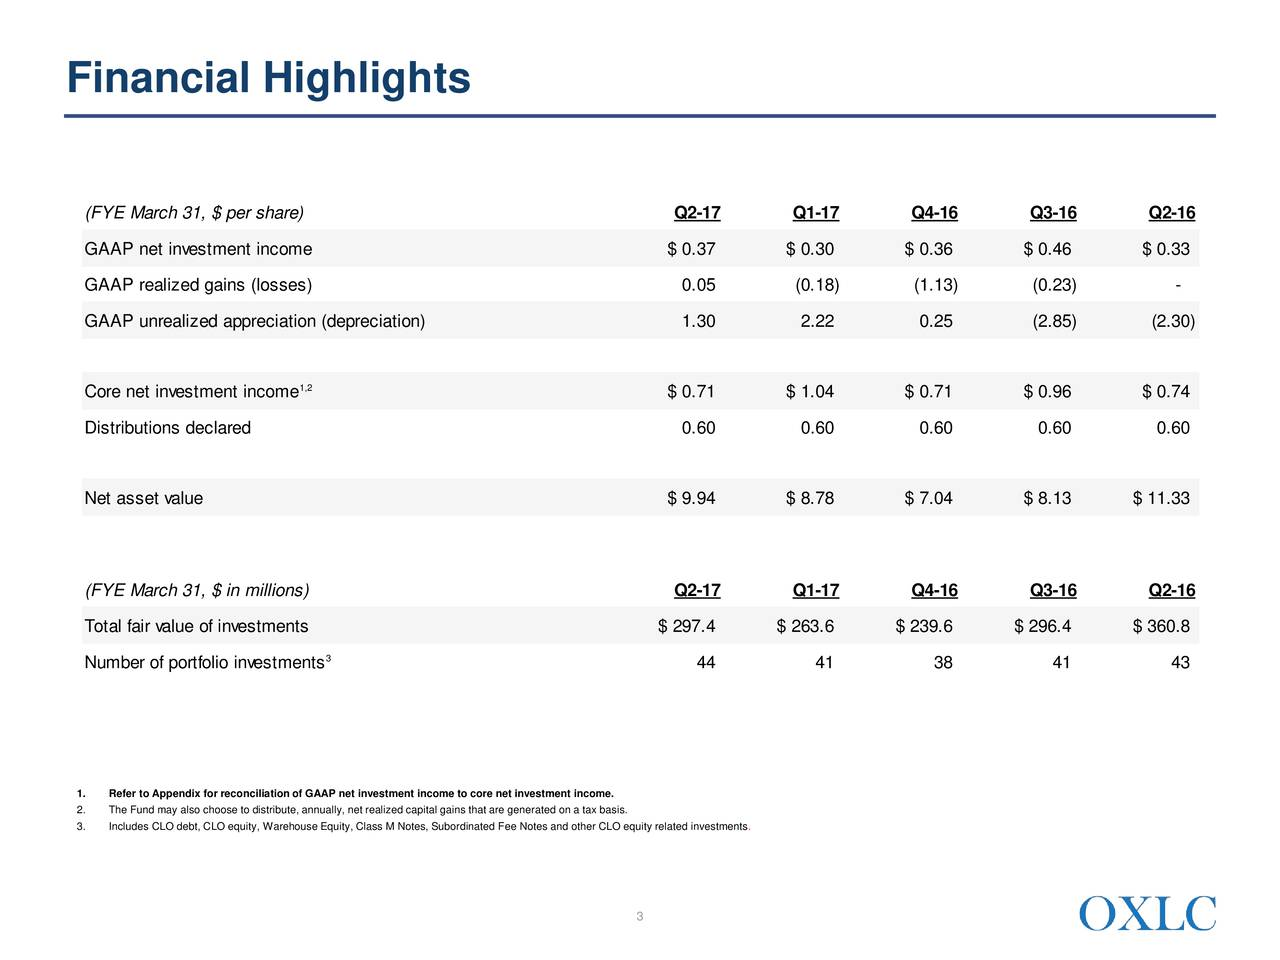 (FYE March 31, $ per share) Q2-17 Q1-17 Q4-16 Q3-16 Q2-16 GAAP net investment income $ 0.37 $ 0.30 $ 0.36 $ 0.46 $ 0.33 GAAP realized gains (losses) 0.05 (0.18) (1.13) (0.23) - GAAP unrealized appreciation (depreciation) 1.30 2.22 0.25 (2.85) (2.30) Core net investment income 1,2 $ 0.71 $ 1.04 $ 0.71 $ 0.96 $ 0.74 Distributions declared 0.60 0.60 0.60 0.60 0.60 Net asset value $ 9.94 $ 8.78 $ 7.04 $ 8.13 $ 11.33 (FYE March 31, $ in millions) Q2-17 Q1-17 Q4-16 Q3-16 Q2-16 Total fair value of investments $ 297.4 $ 263.6 $ 239.6 $ 296.4 $ 360.8 Number of portfolio investments 3 44 41 38 41 43 1. Refer to Appendix for reconciliation of GAAP net investment income to core net investment income. 2. The Fund may also choose to distribute, annually, net realized capital gains that are generated on a tax basis. 3. Includes CLO debt, CLO equity, Warehouse Equity, Class M Notes, Subordinated Fee Notes and other CLO equity related investments. 3